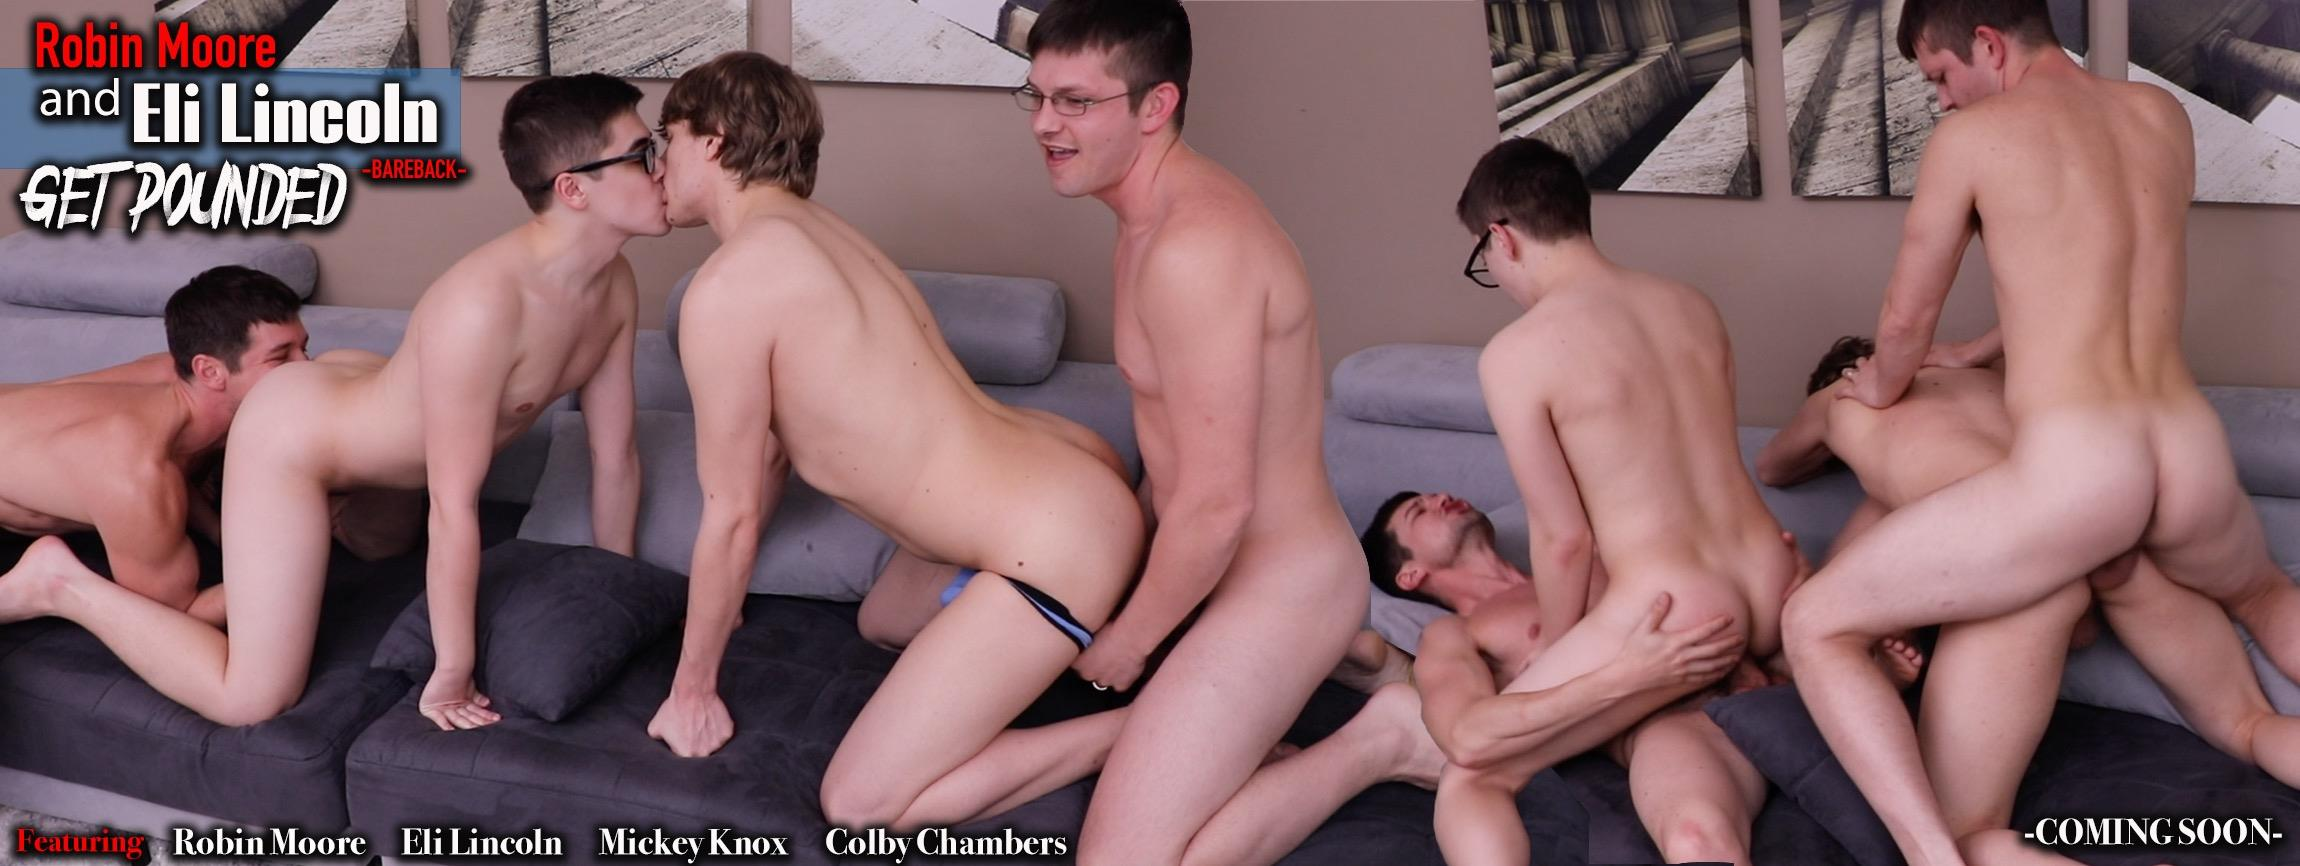 Robin Moore and Eli Lincoln get Pounded Bareback